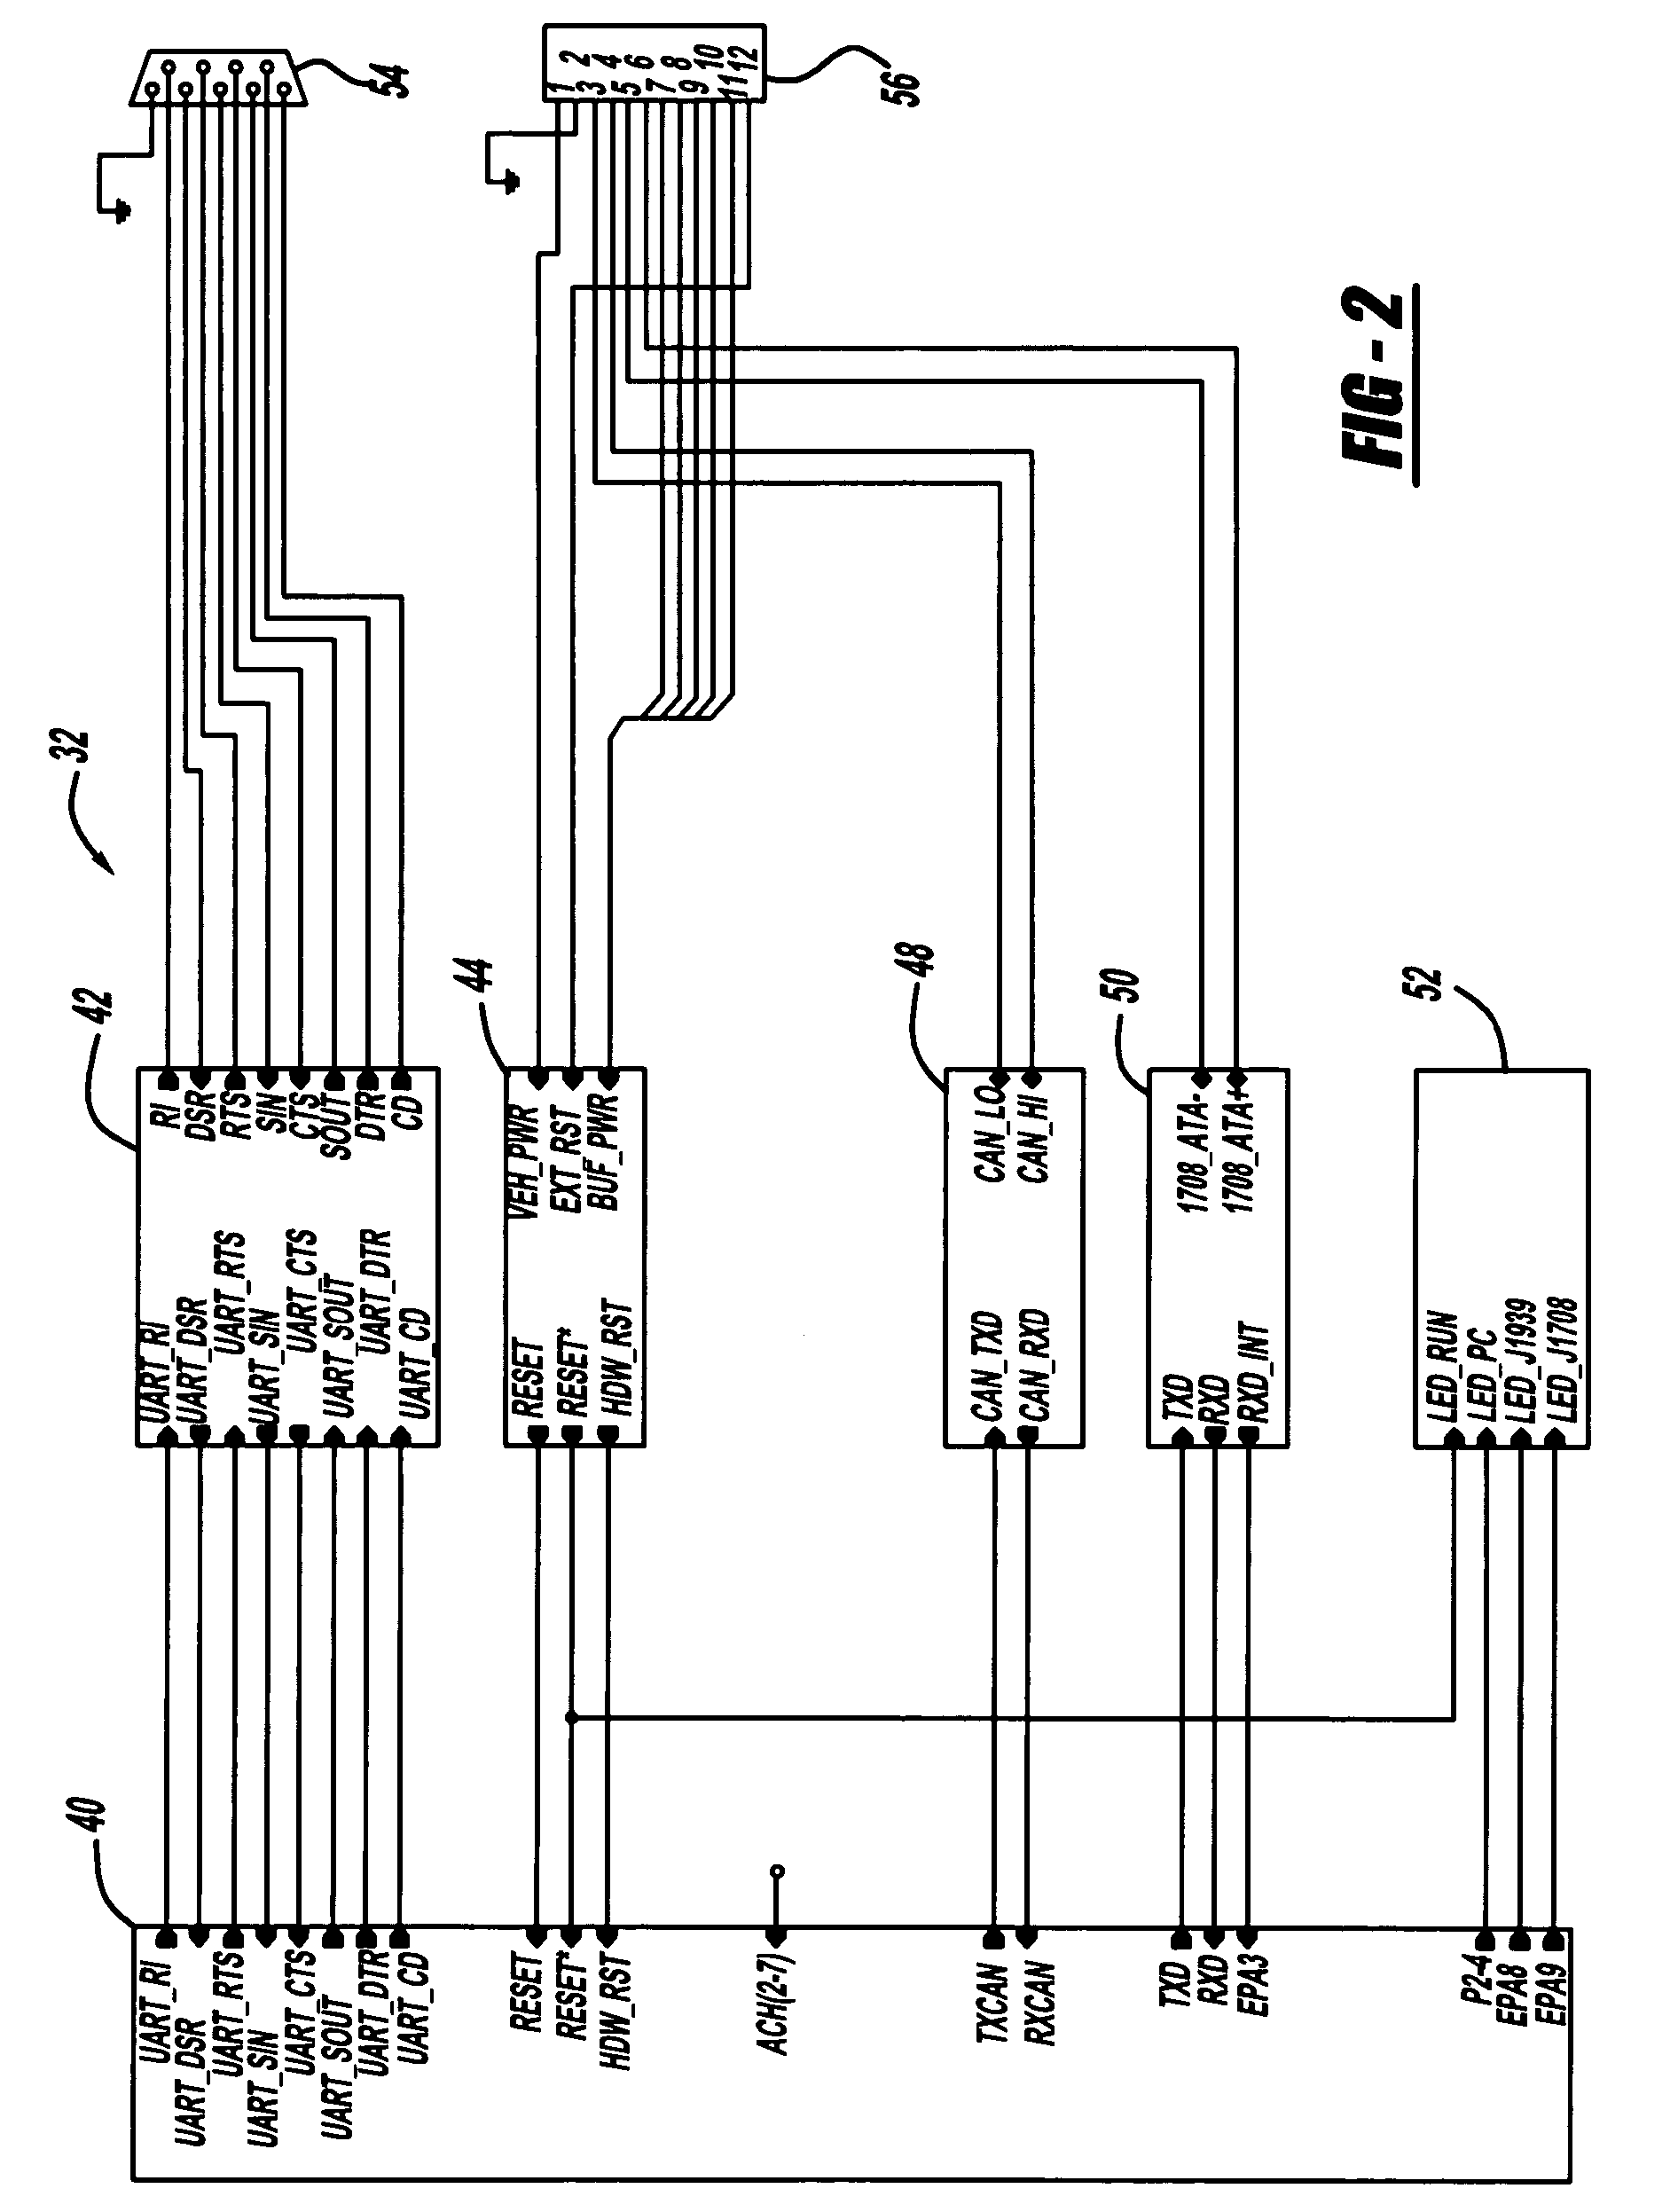 1999 international 8100 wiring diagram